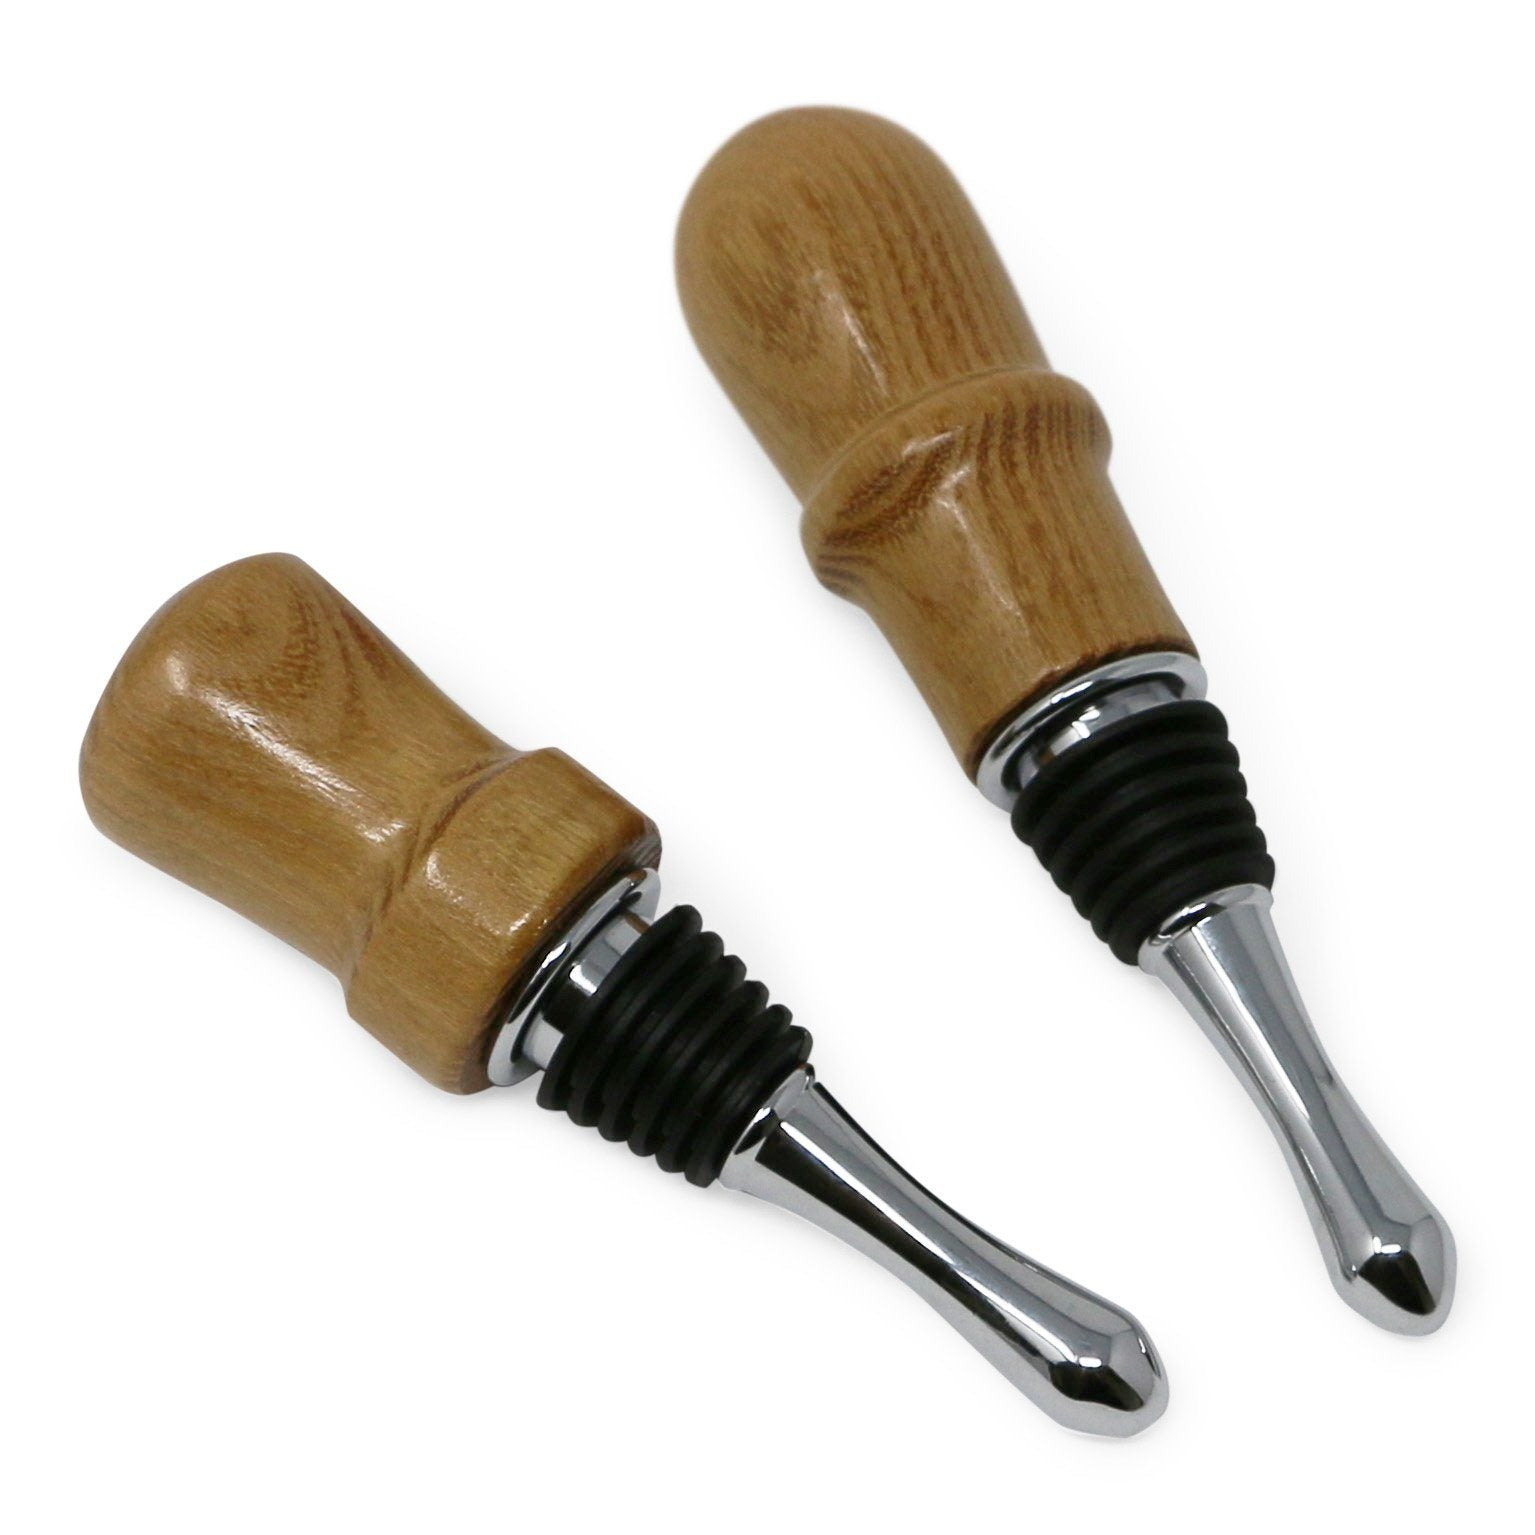 Historic Turned Wood Bottle Stopper